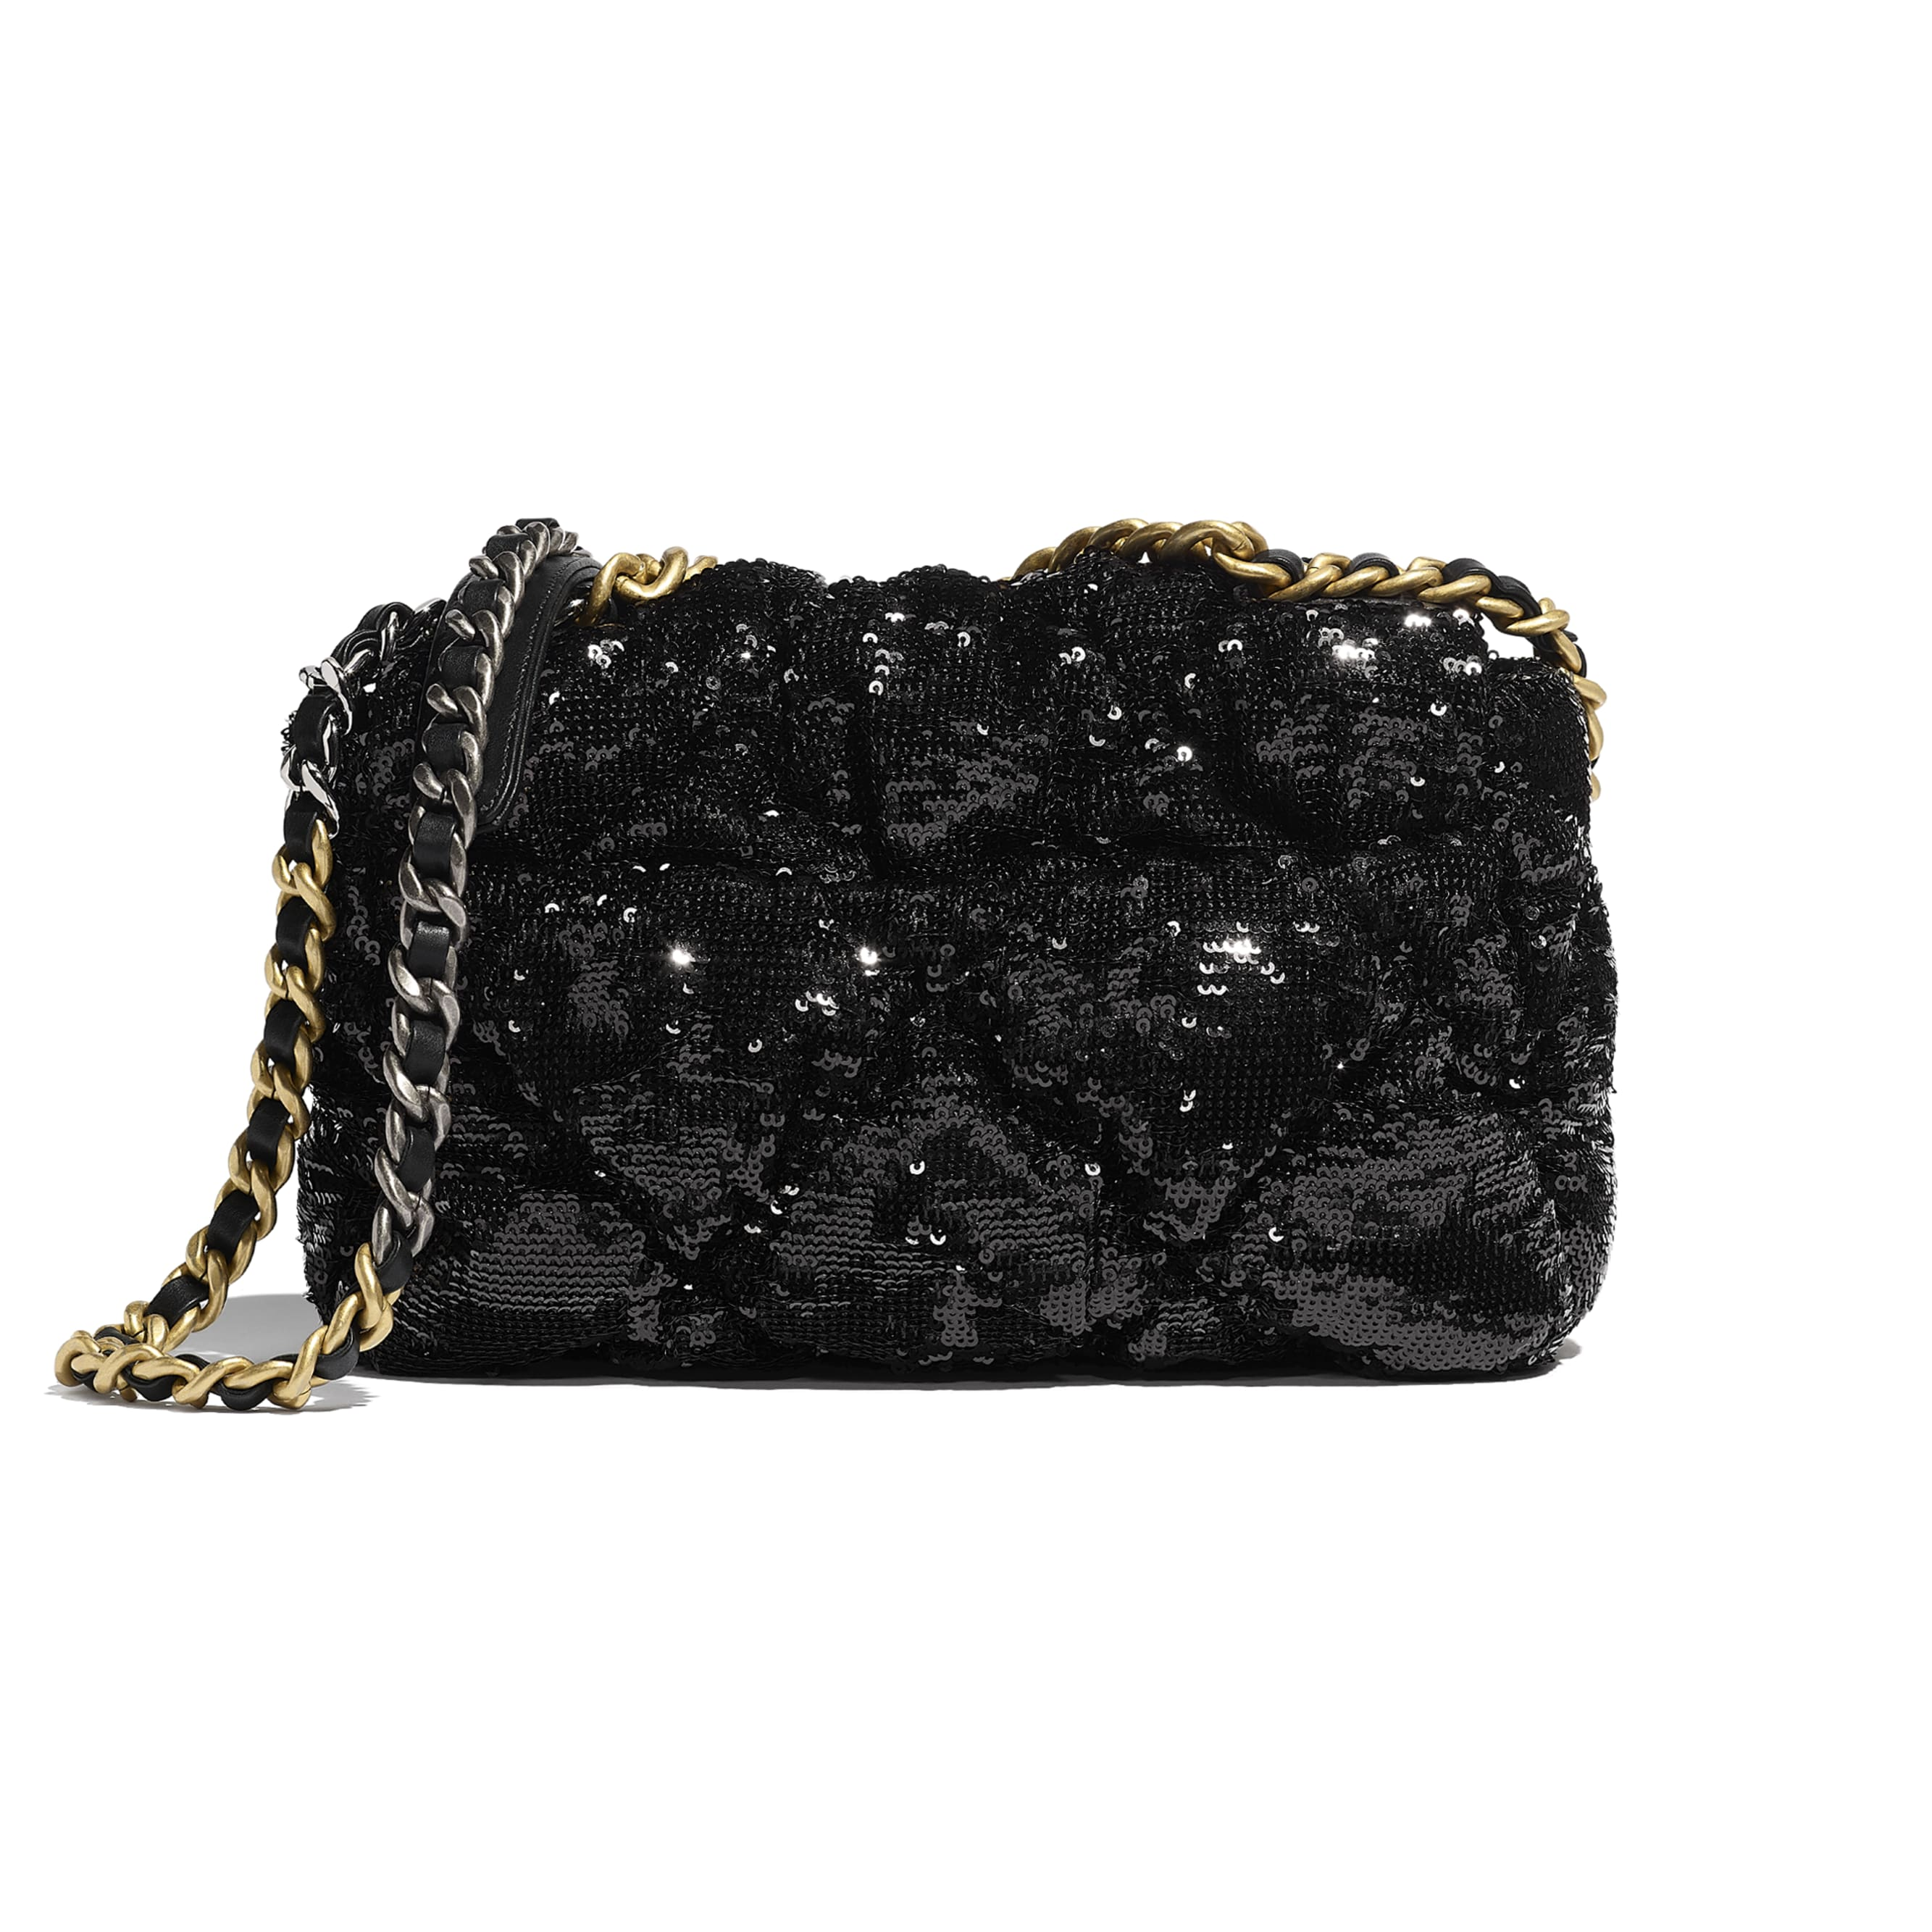 CHANEL 19 Flap Bag - Black - Sequins, Gold-Tone, Siver-Tone & Ruthenium-Finish Metal - CHANEL - Alternative view - see standard sized version